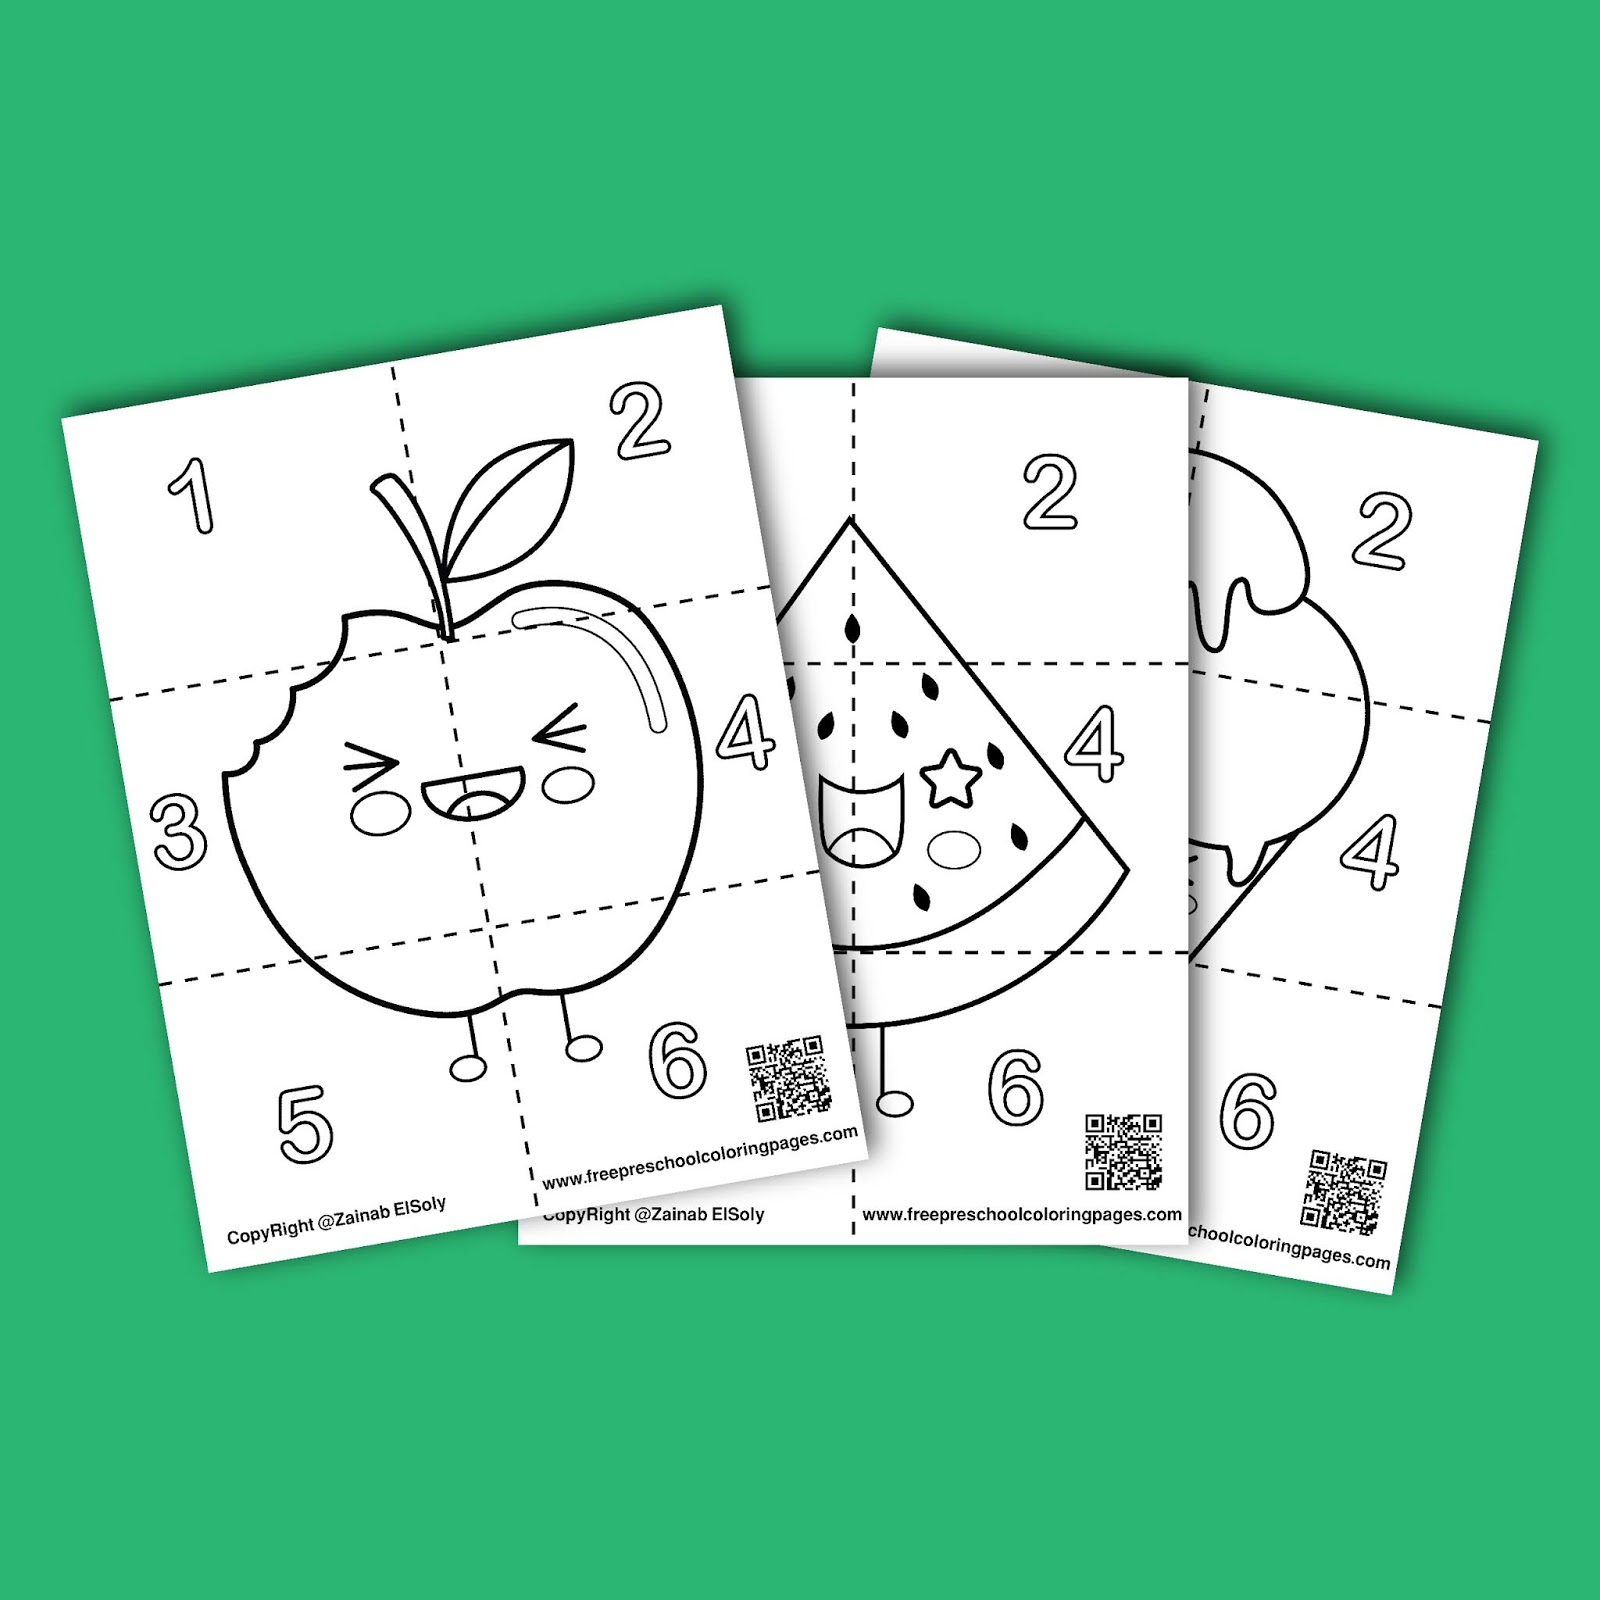 174 Best Puzzled ideas images | Printable puzzles, Coloring pages ... | 1600x1600